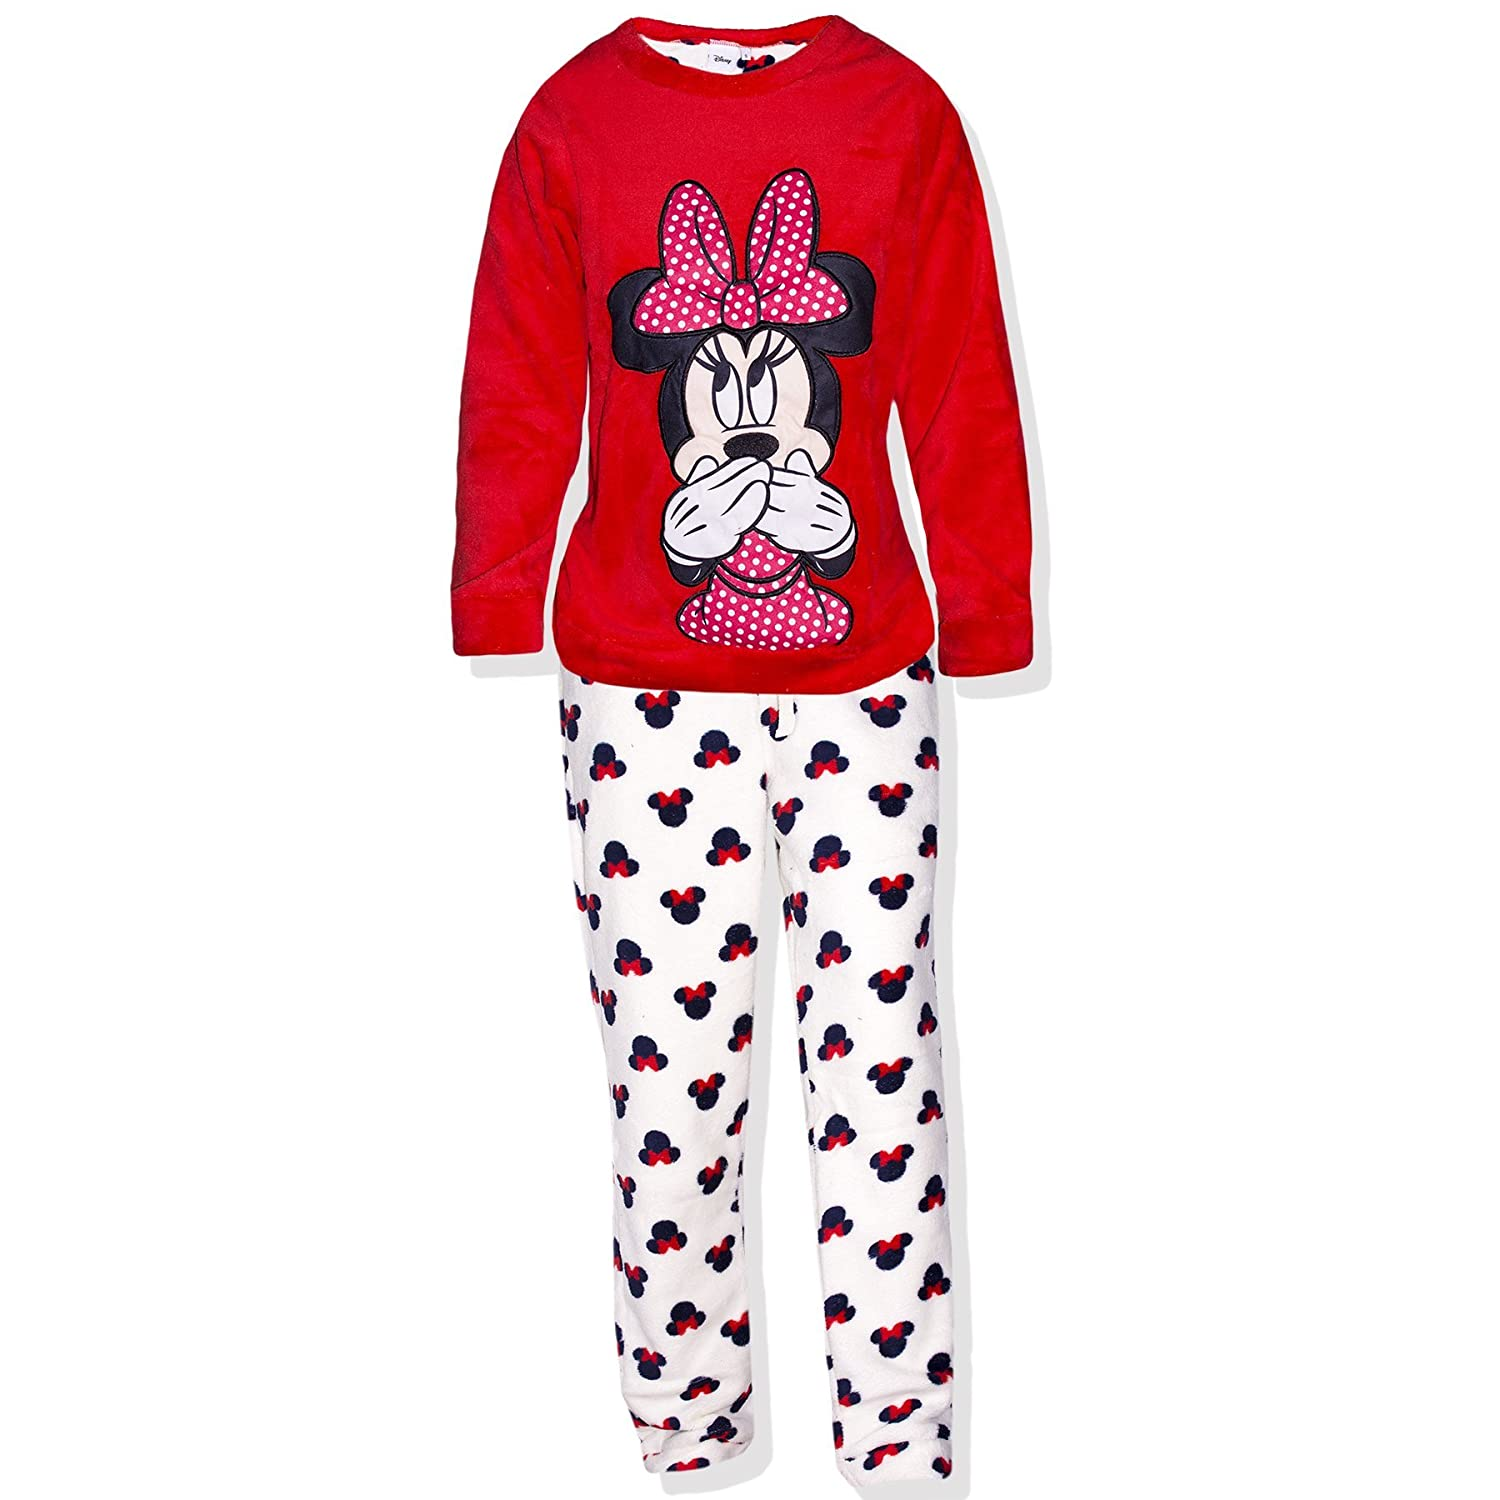 1359fa2abe Disney Official Minnie Mouse Character Cartoon Women s Pyjamas Set Lounge  Wear Coral Fleece - Sizes 8